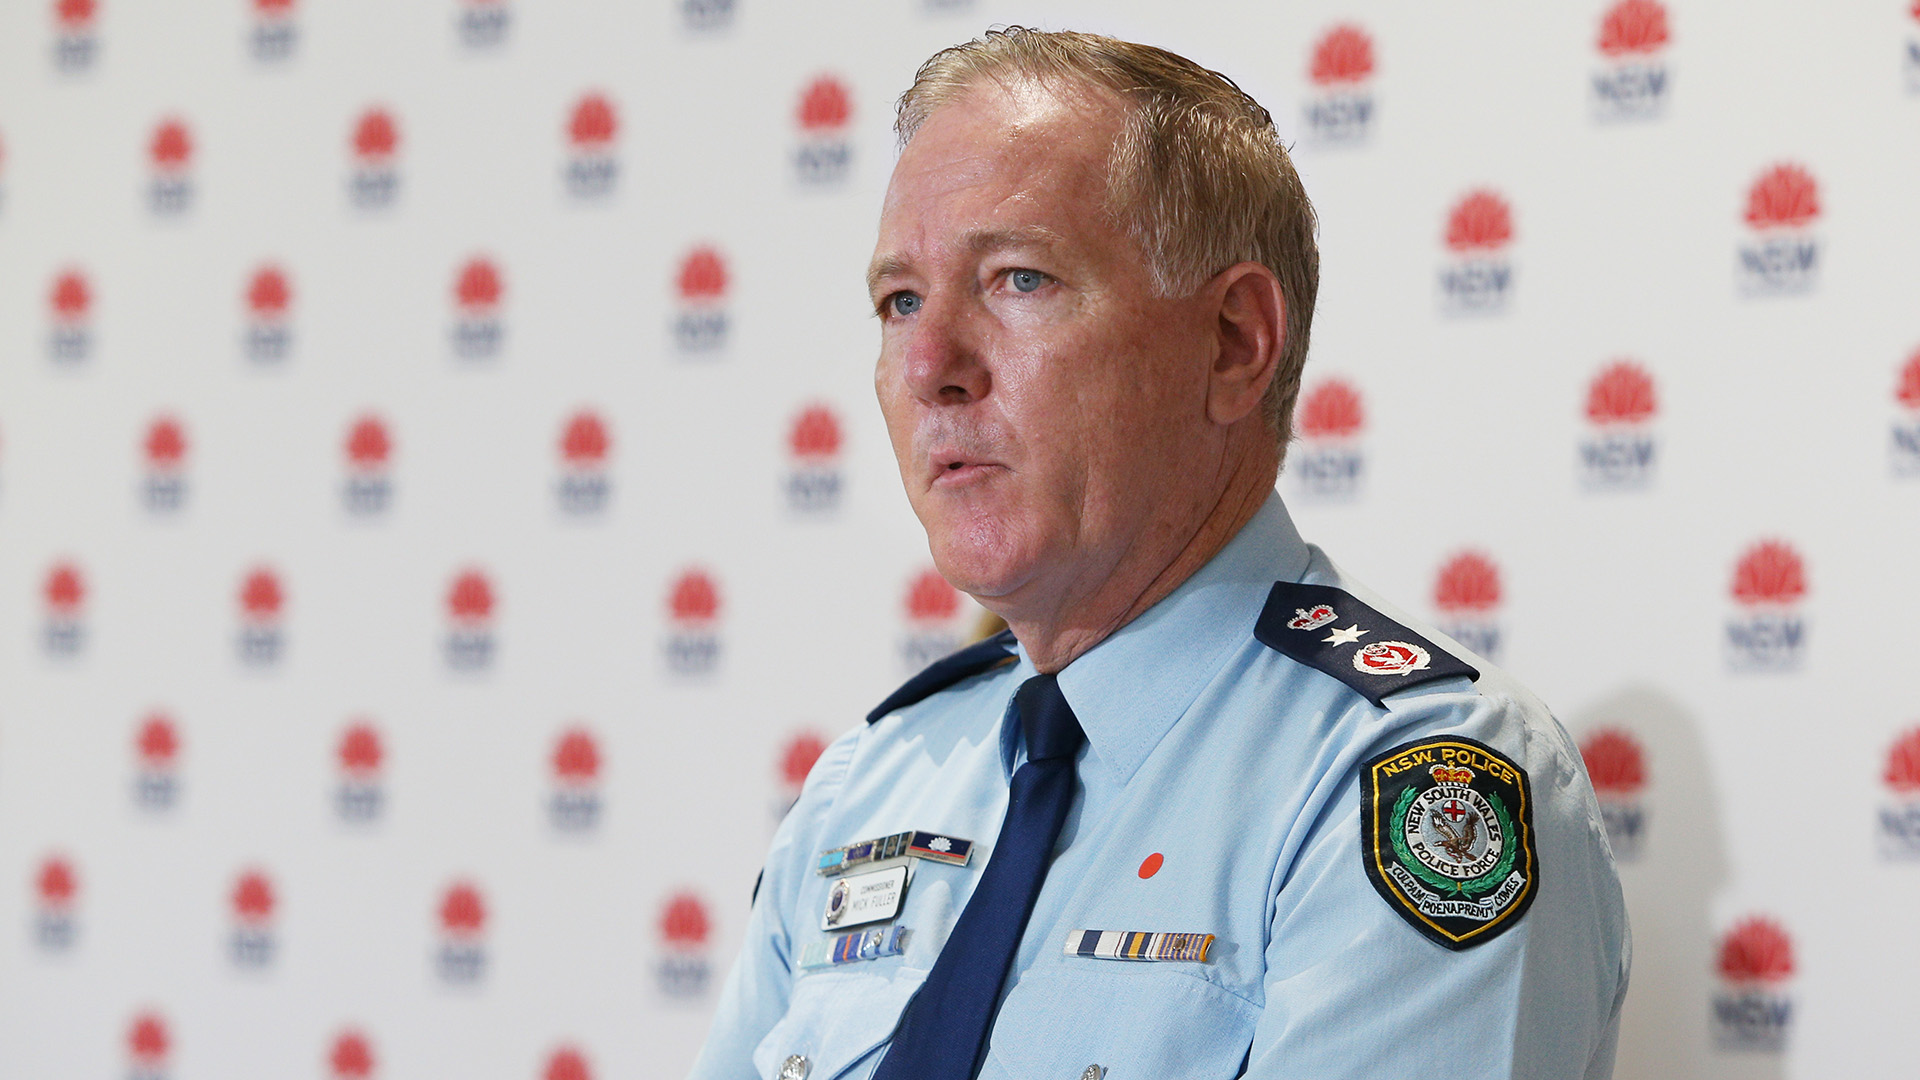 """""""Anarchists"""" Behind Australian Lockdown Protest: Police Commissioner"""